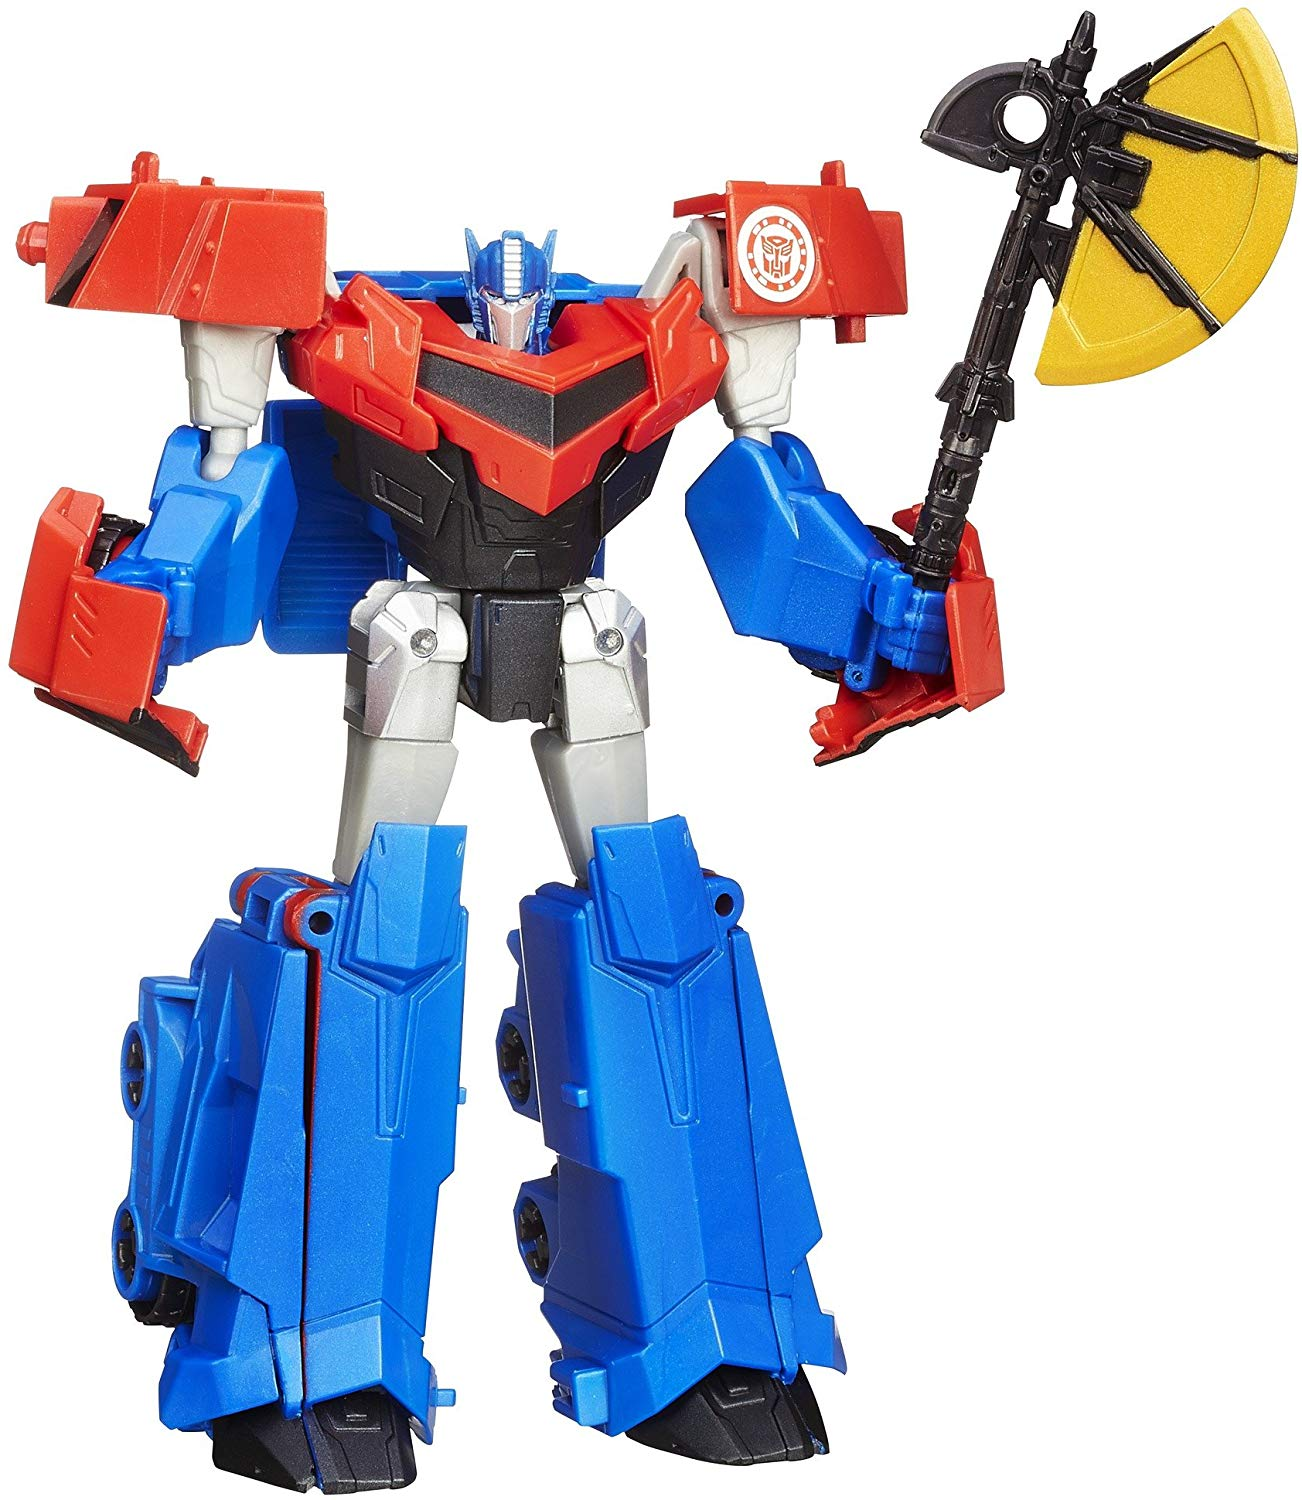 Hasbro Transformers Robots in Disguise Warrior Class Optimus Prime